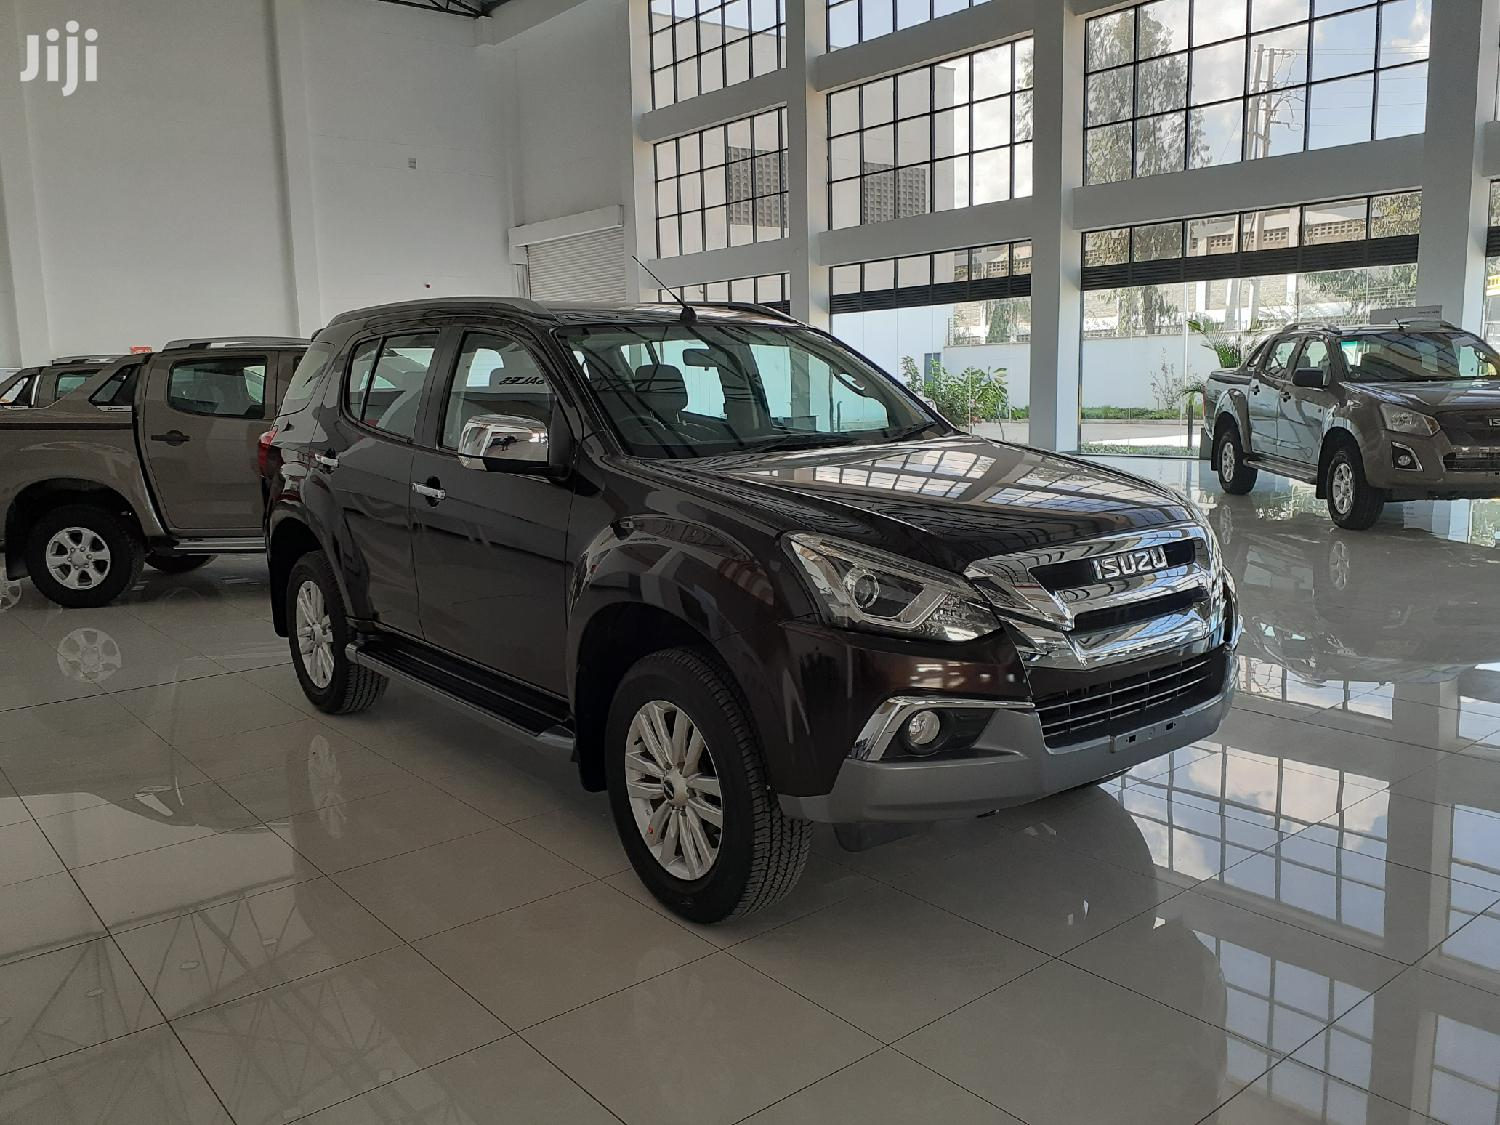 New Isuzu Minx 2020 Gray | Cars for sale in Nairobi South, Nairobi, Kenya